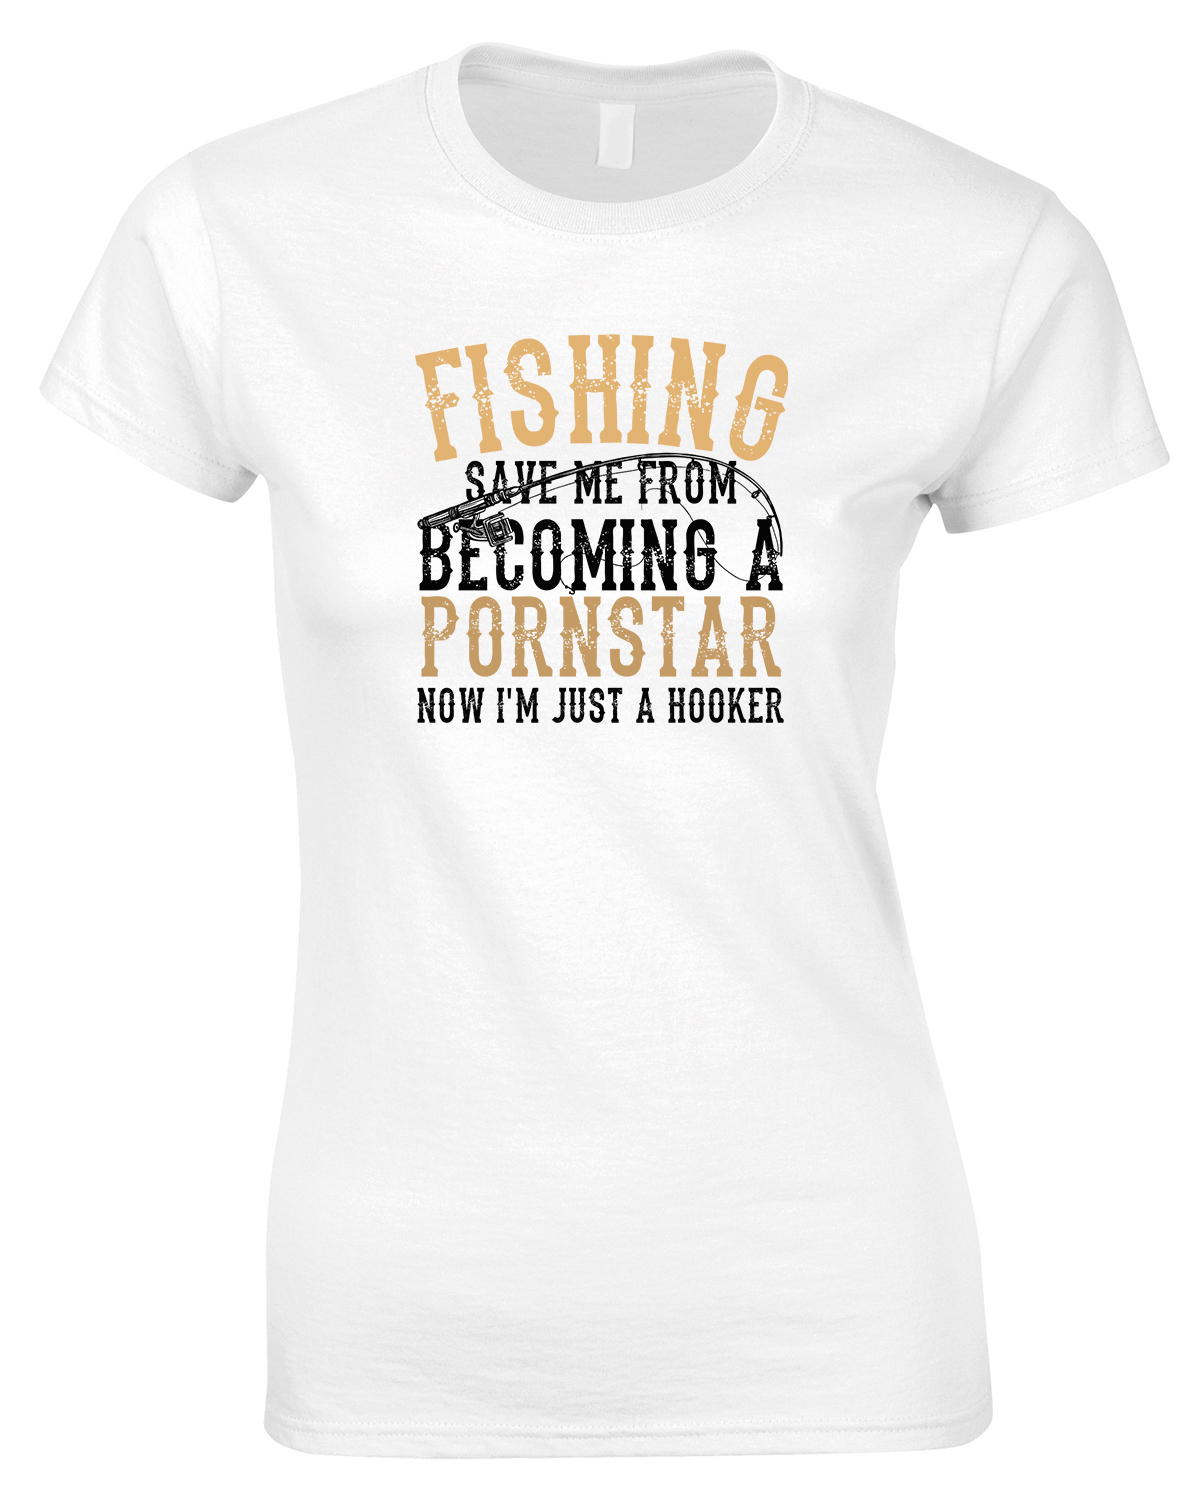 Fishing Save Me from Becoming A Pornstar-Ladies T Shirt